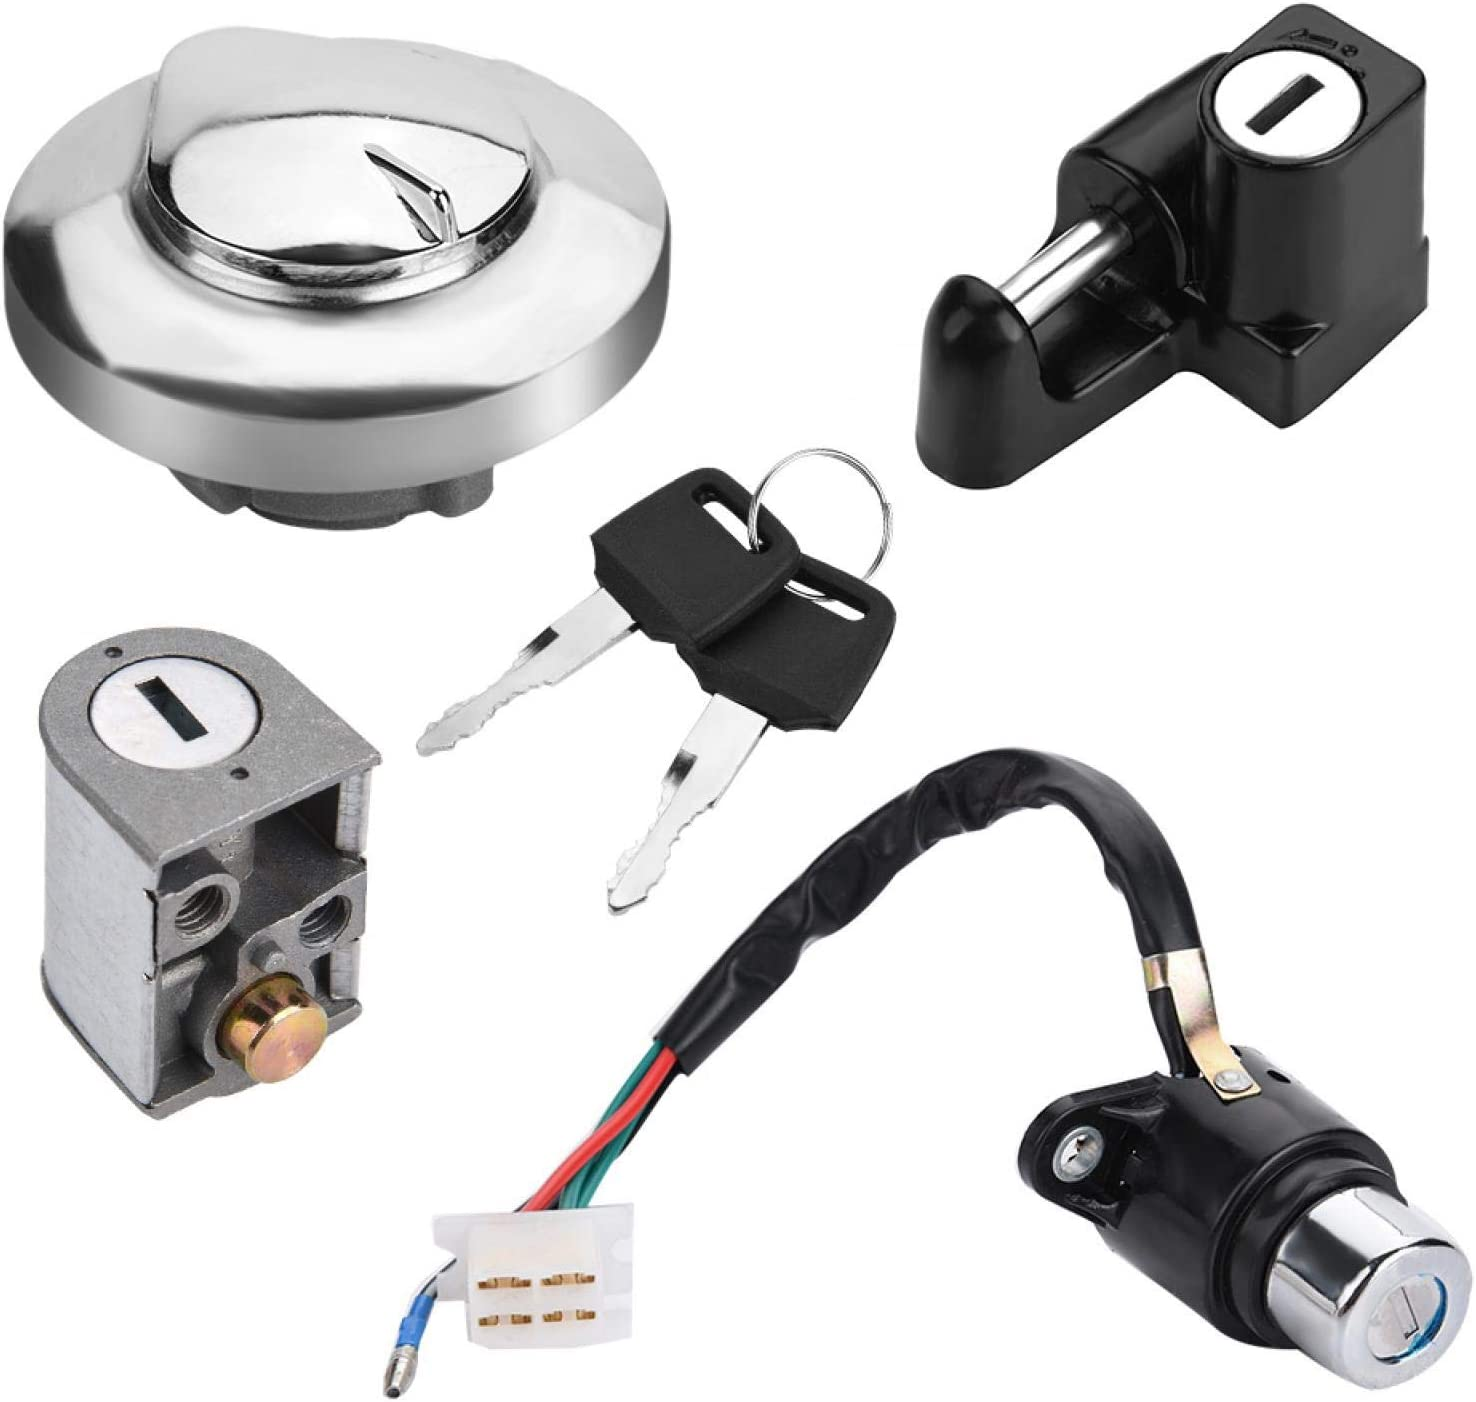 Ignition Lock Seat Reservation Motorcycle Gas Switch Fuel Ca Ultra-Cheap Deals